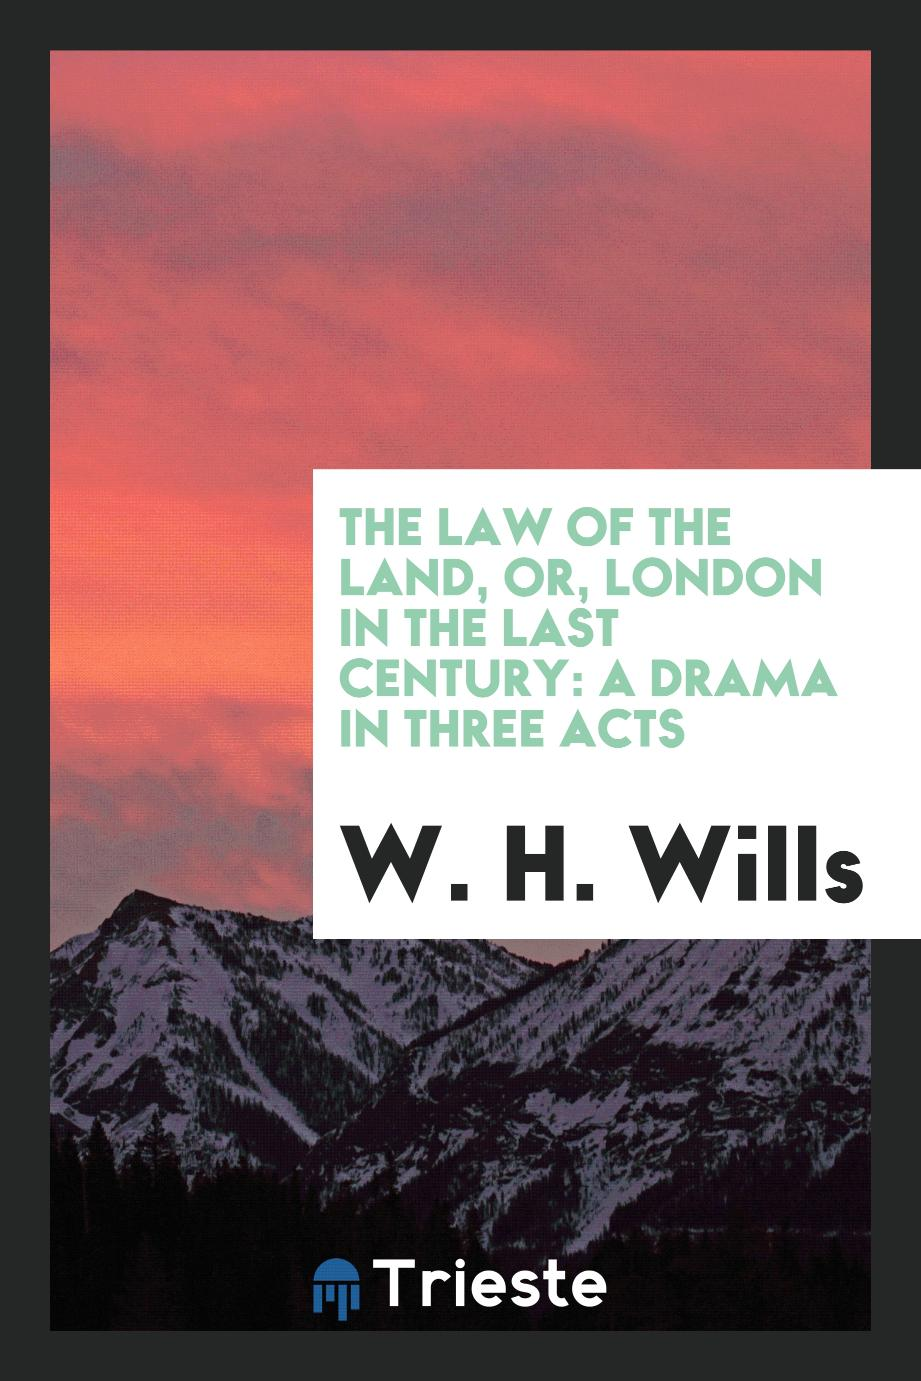 The Law of the Land, Or, London in the Last Century: A Drama in Three Acts